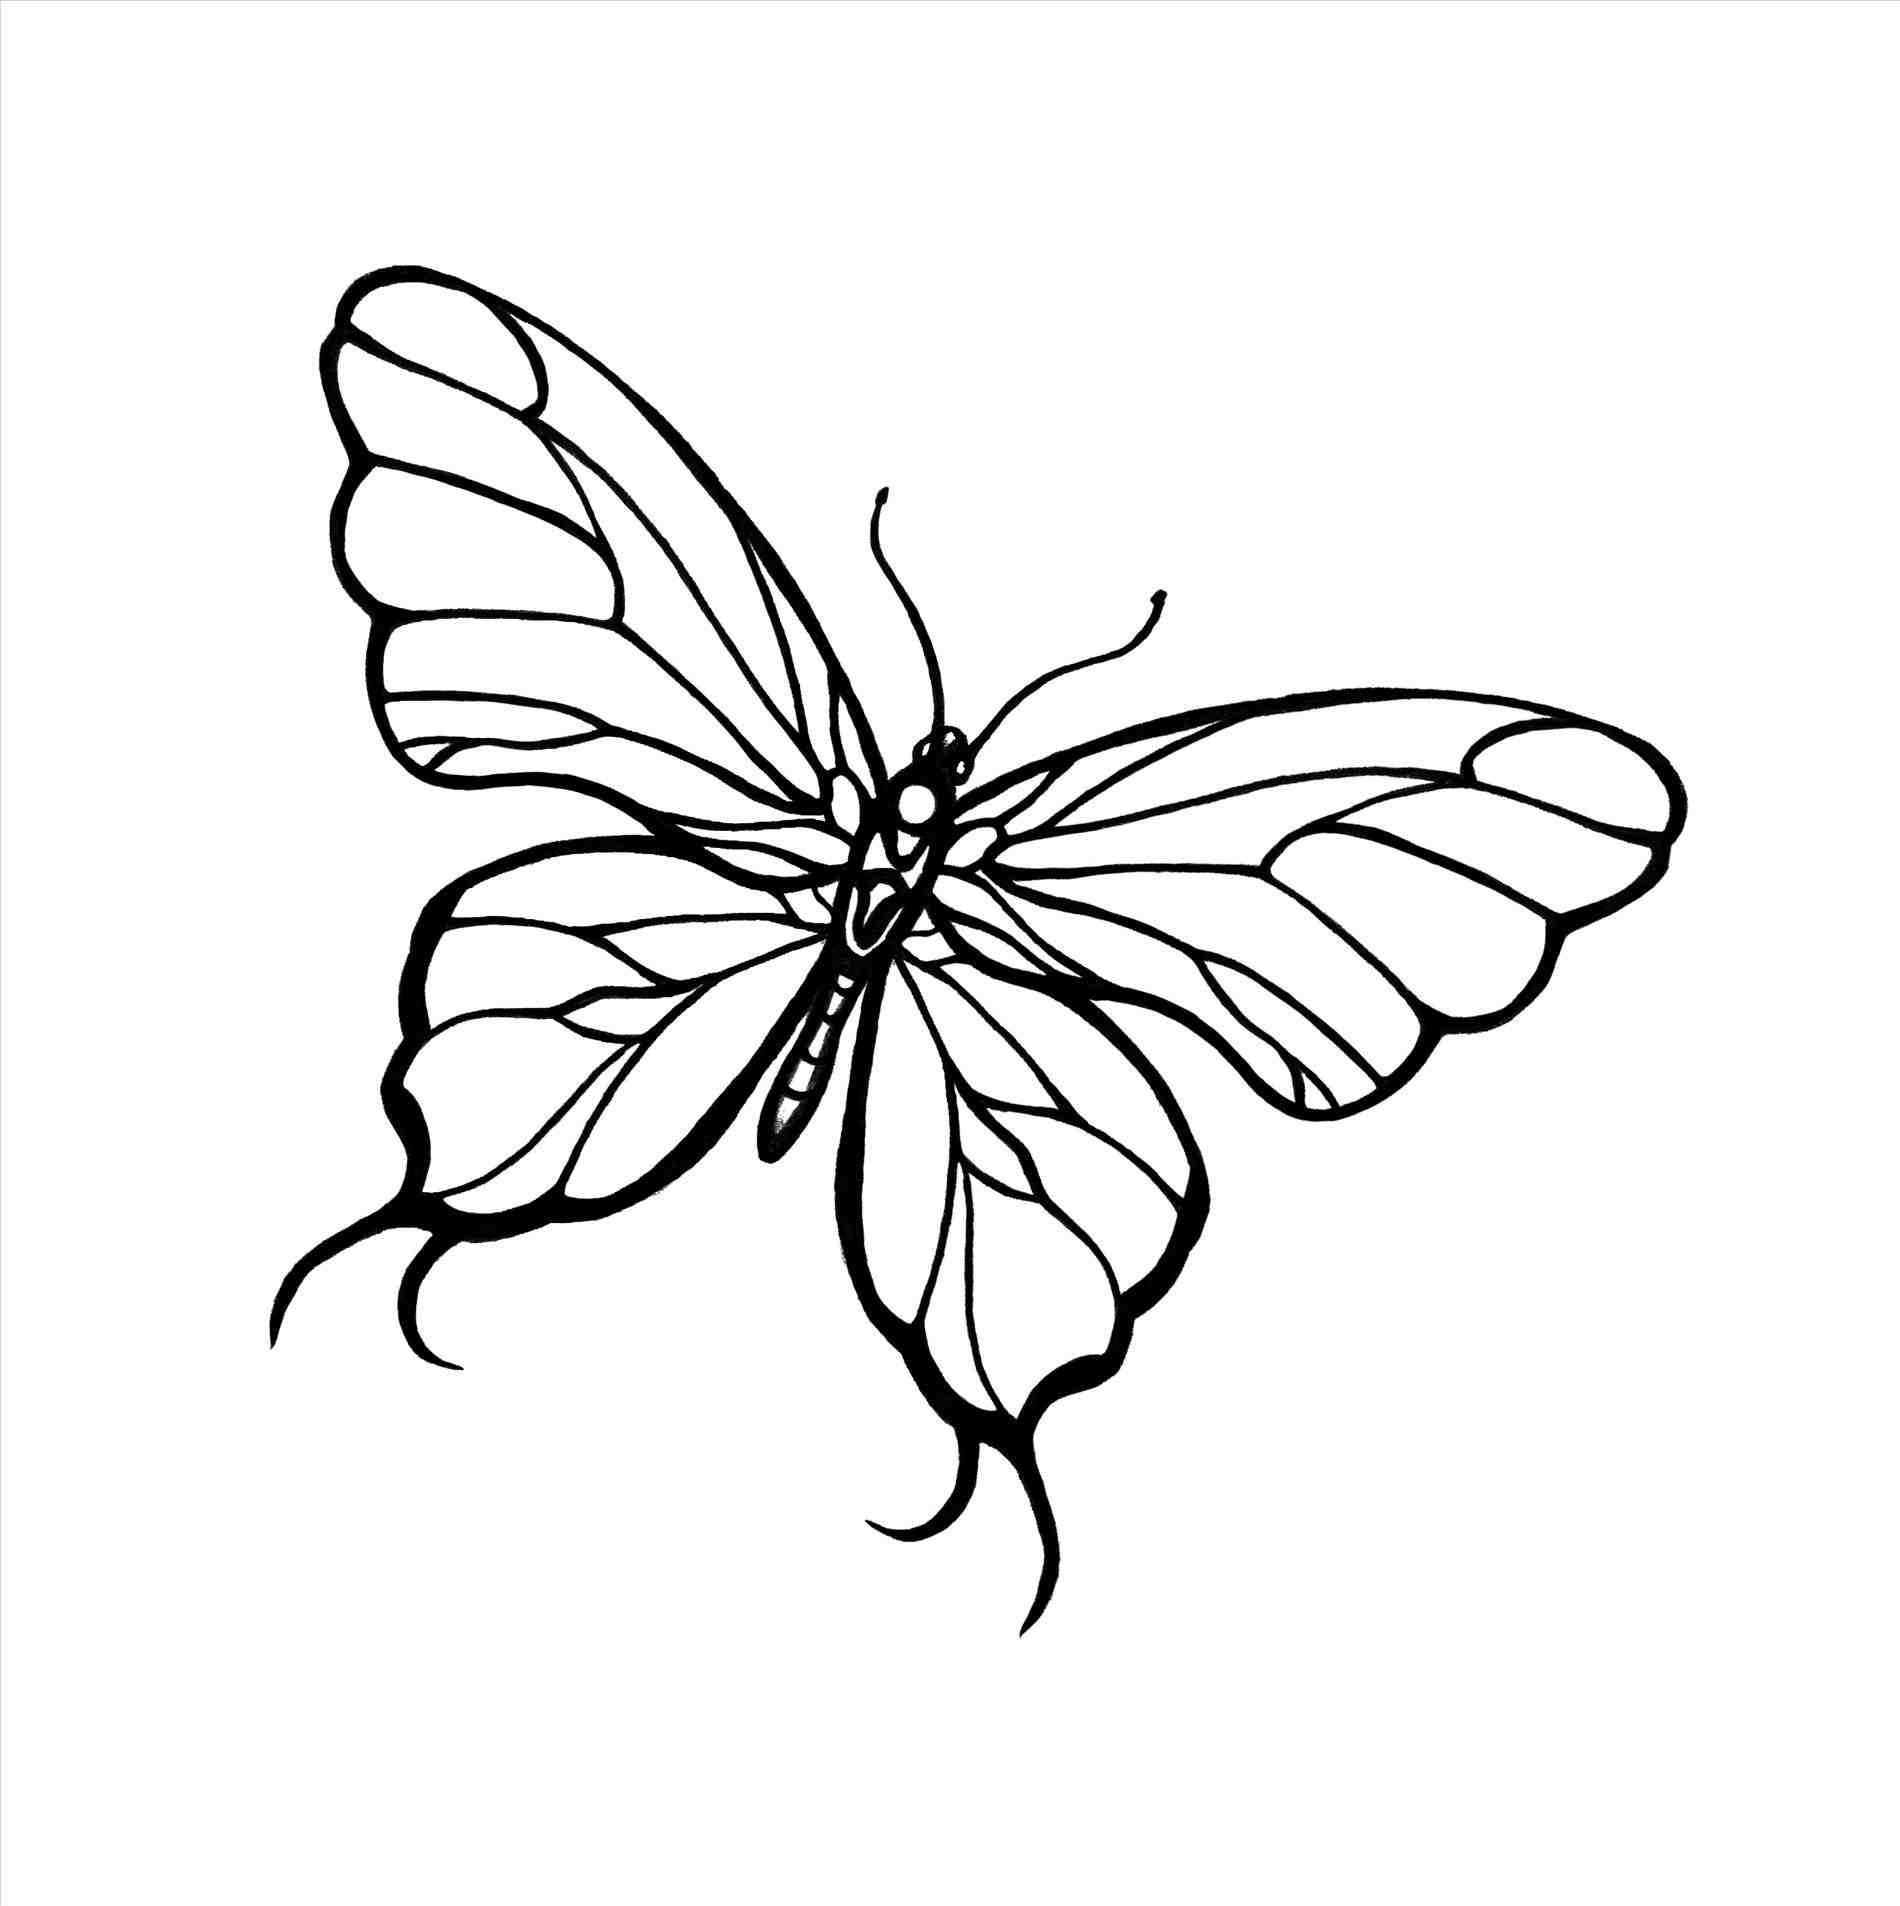 1900x1906 Cool Butterfly Drawings Drawing A Cool Tribal Butterfly Tattoo